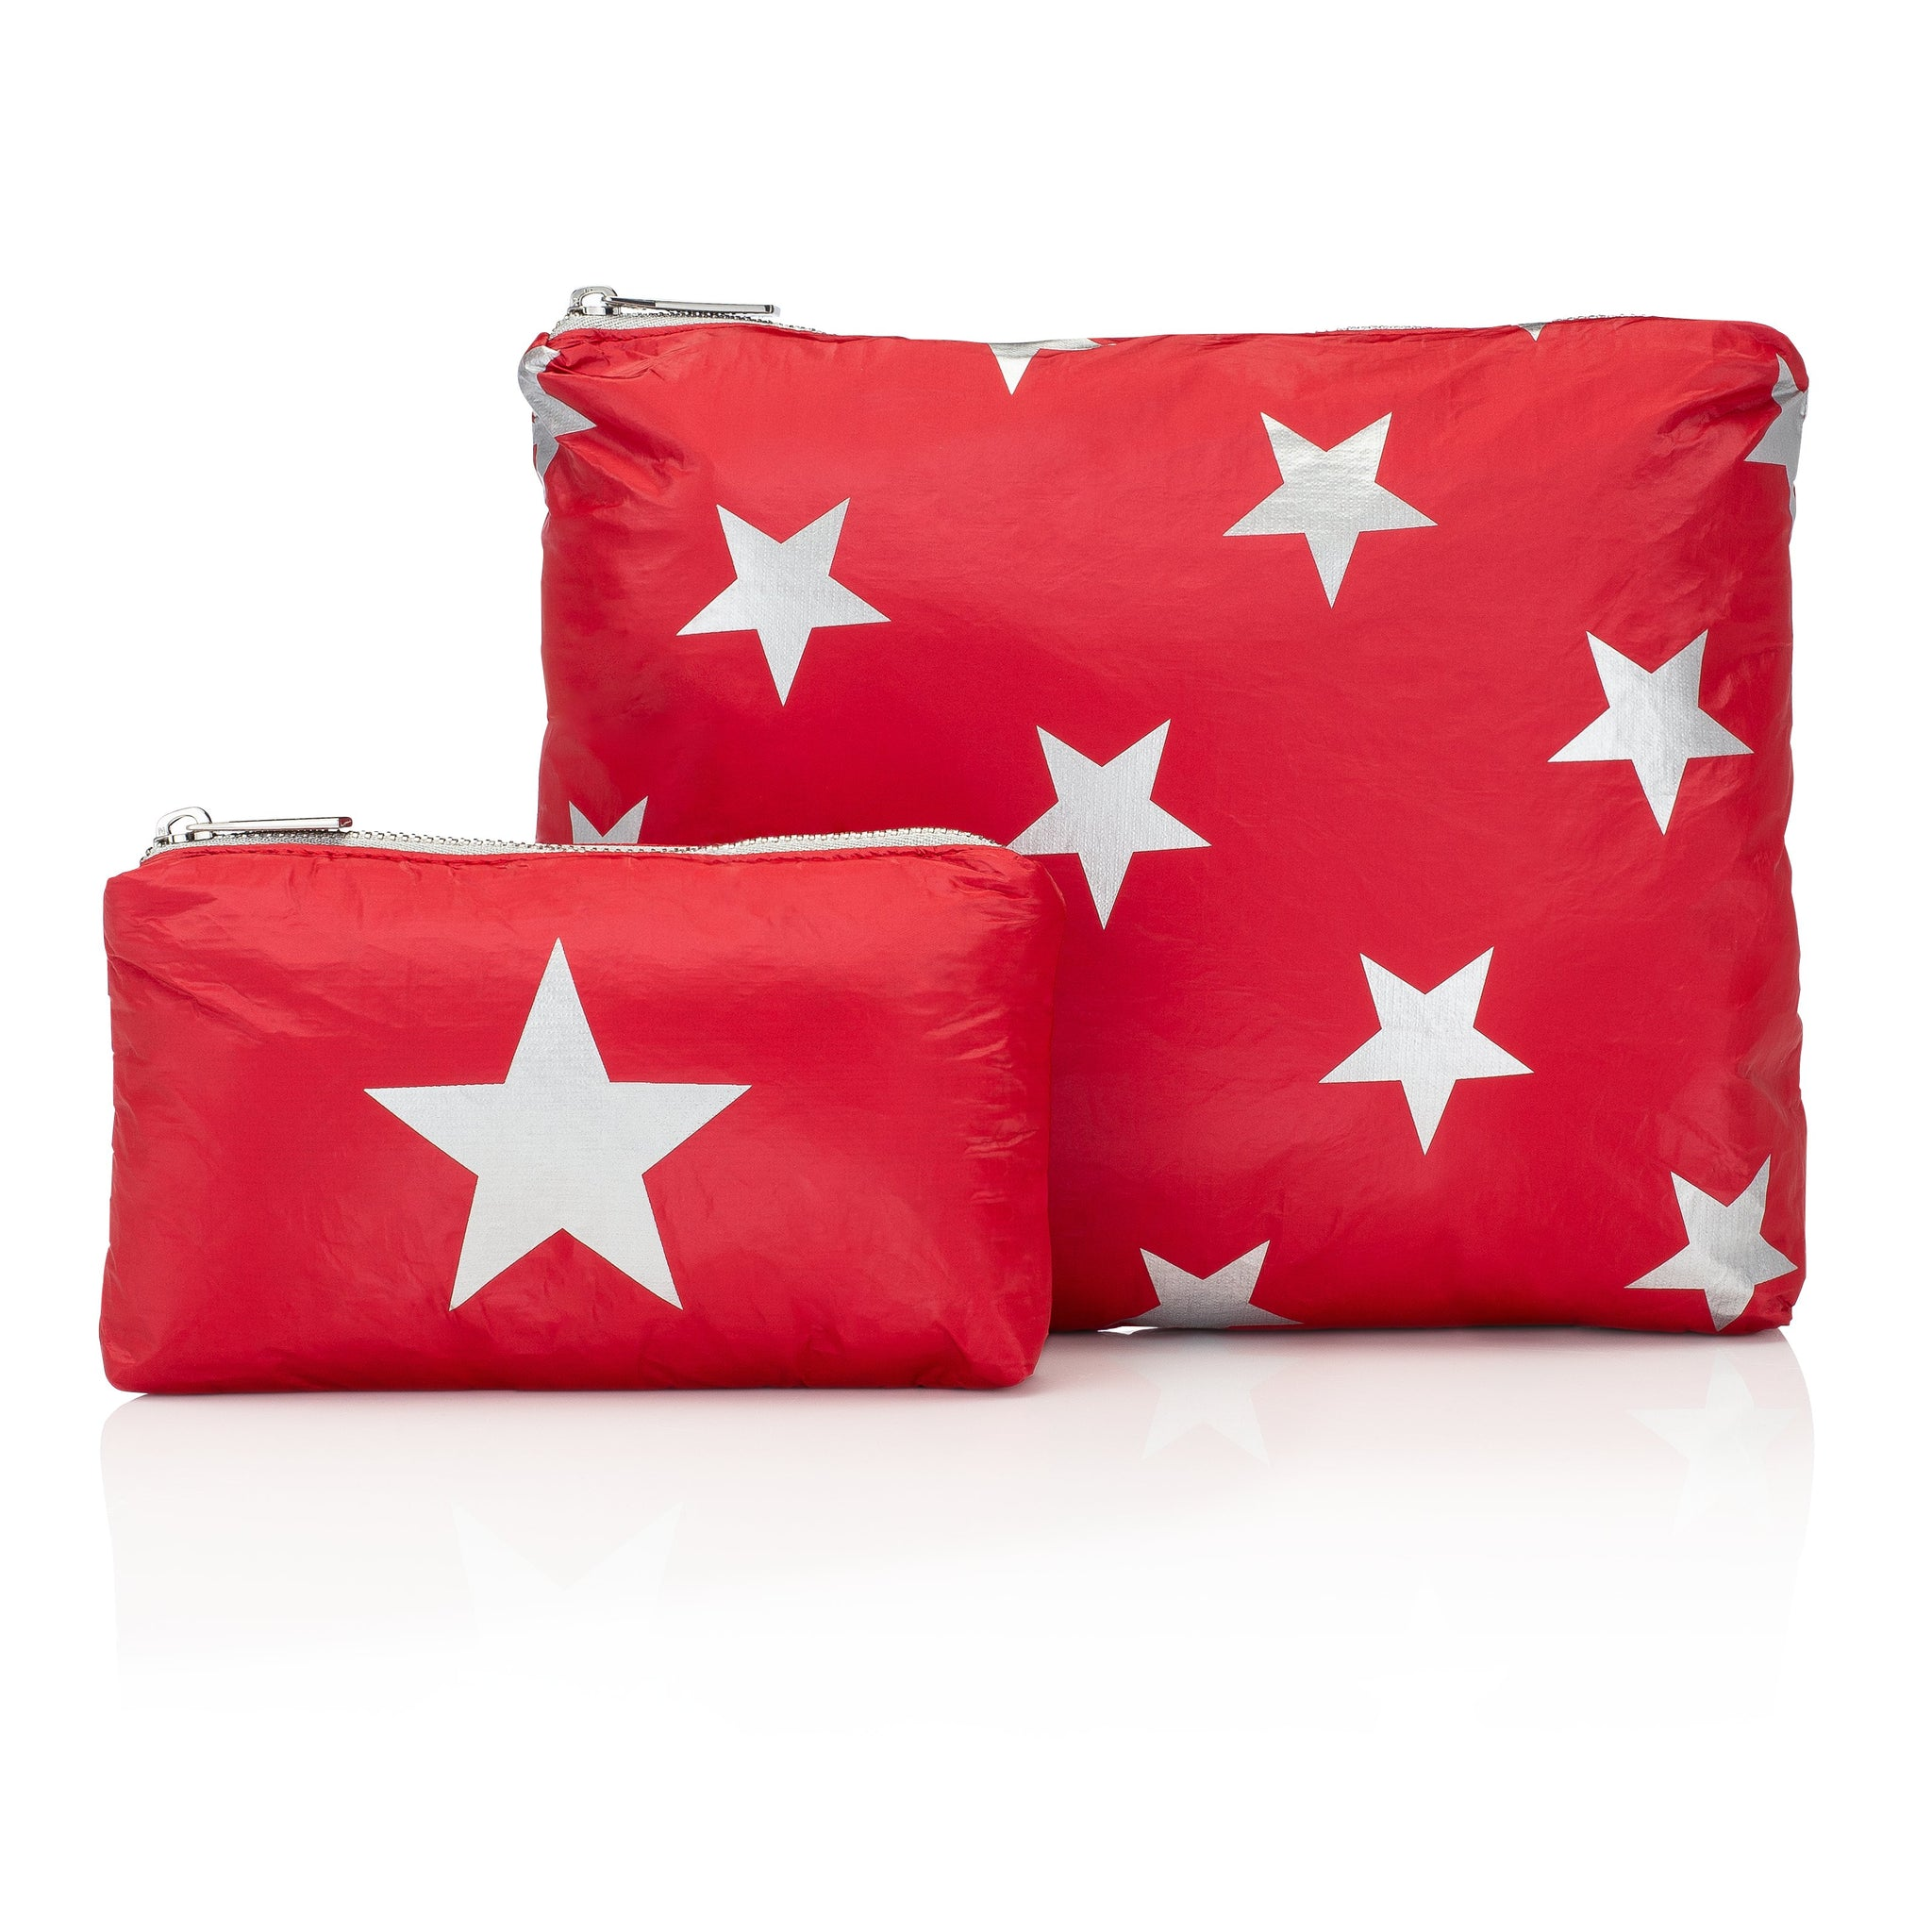 Set of Two - Chili Pepper Red with Silver Stars